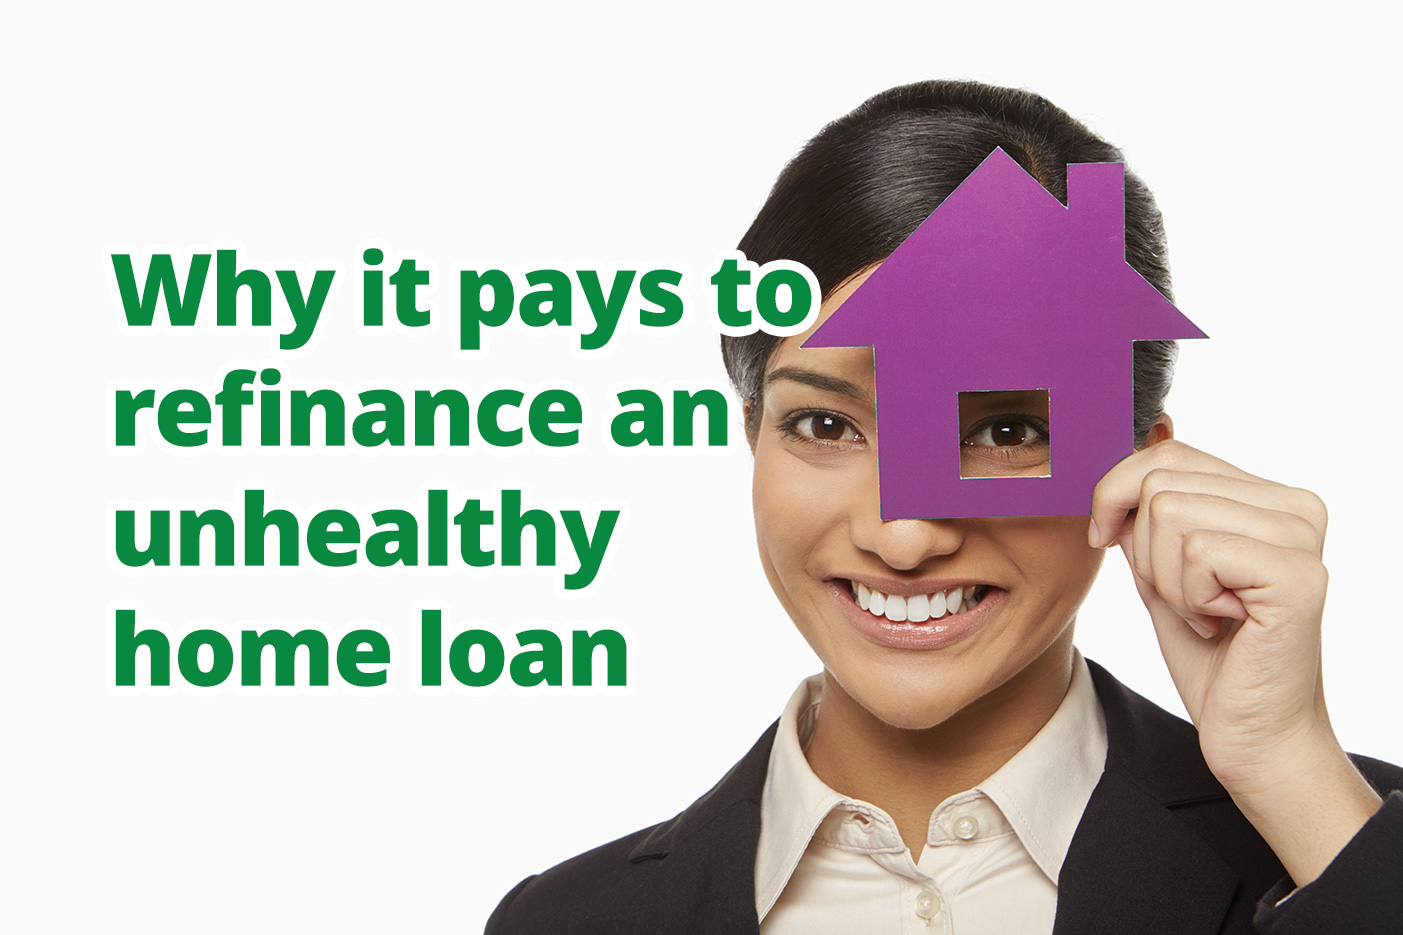 Why it pays to refinance an unhealthy home loan